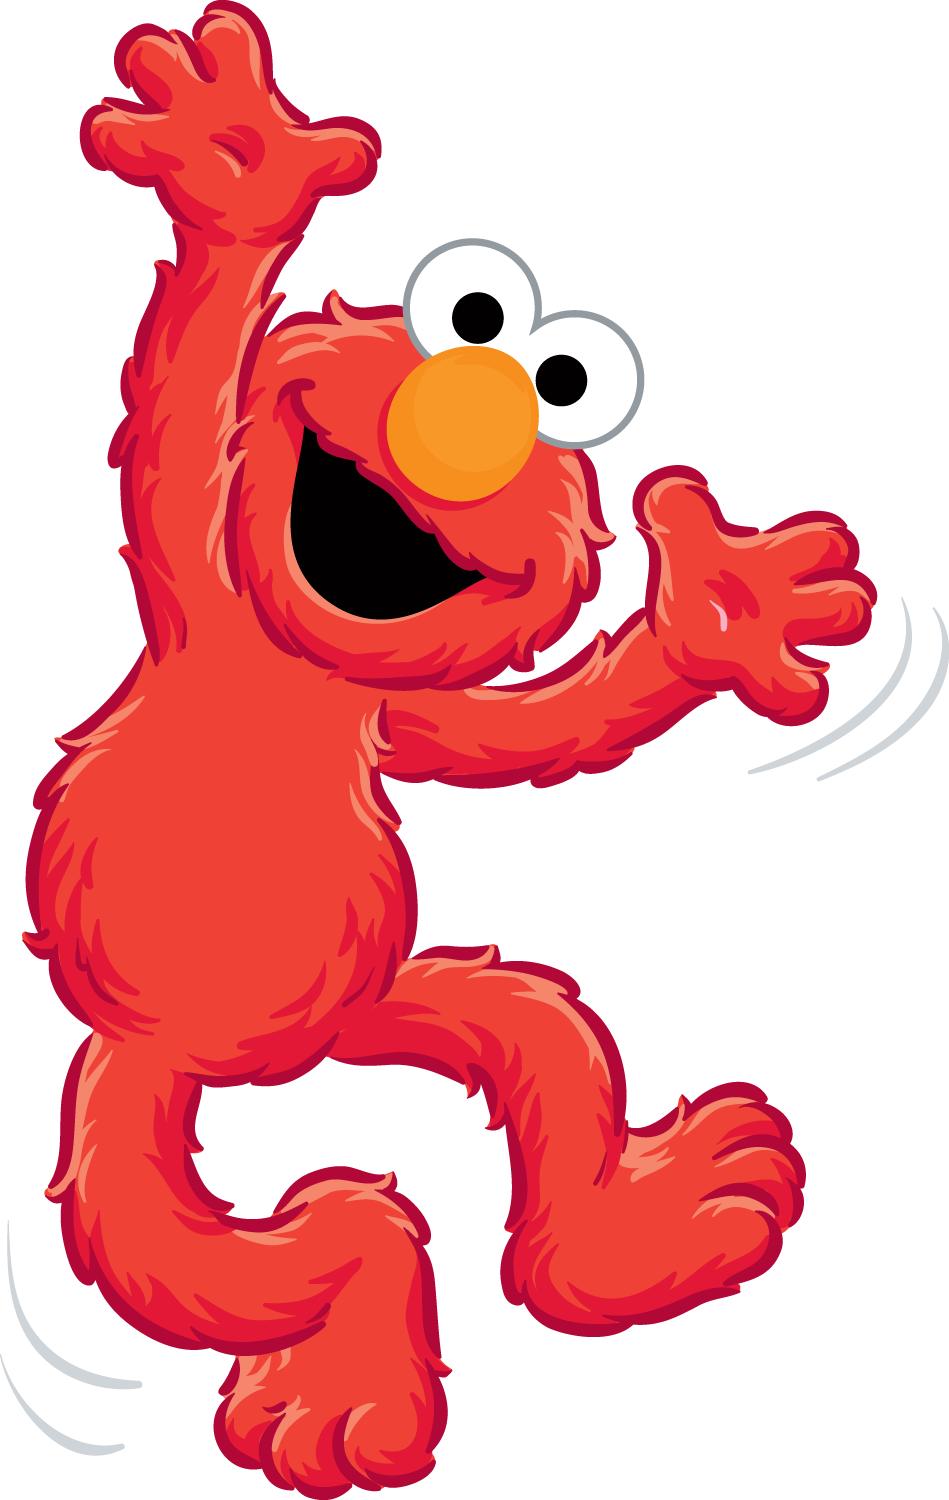 8 images elmo free cliparts elmo pinterest elmo sesame rh pinterest com free clipart images of flowers free clipart images for powerpoint